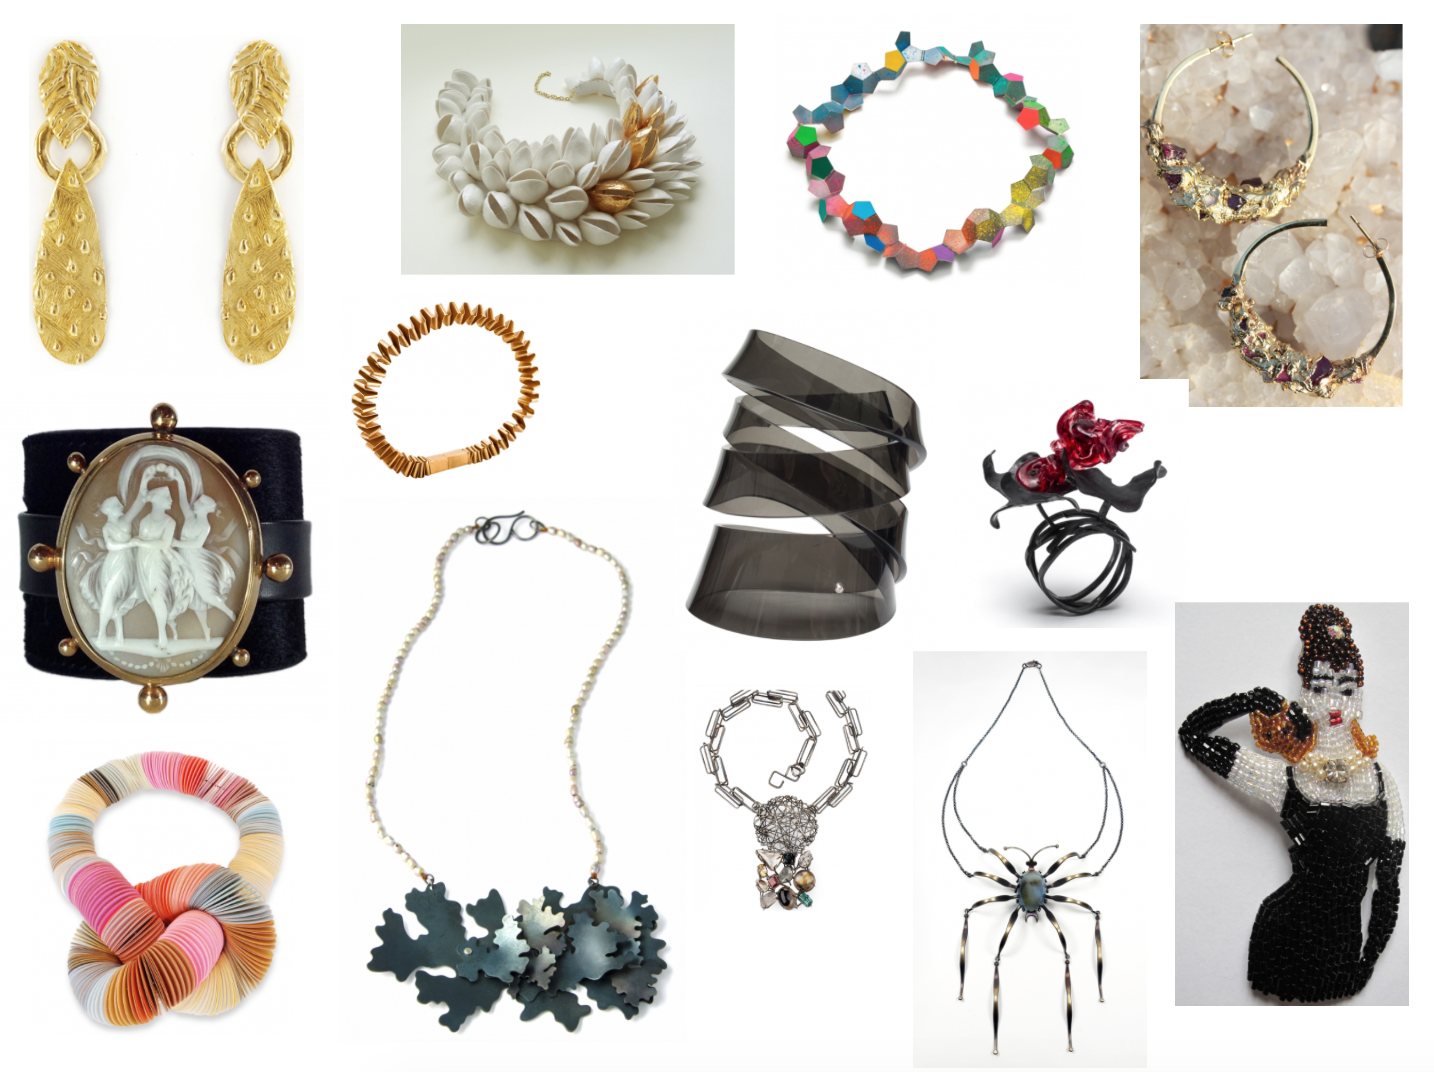 Karen Klopp and Hilary Dick article for New York Social Diary, New York Loot mad about Jewelry.